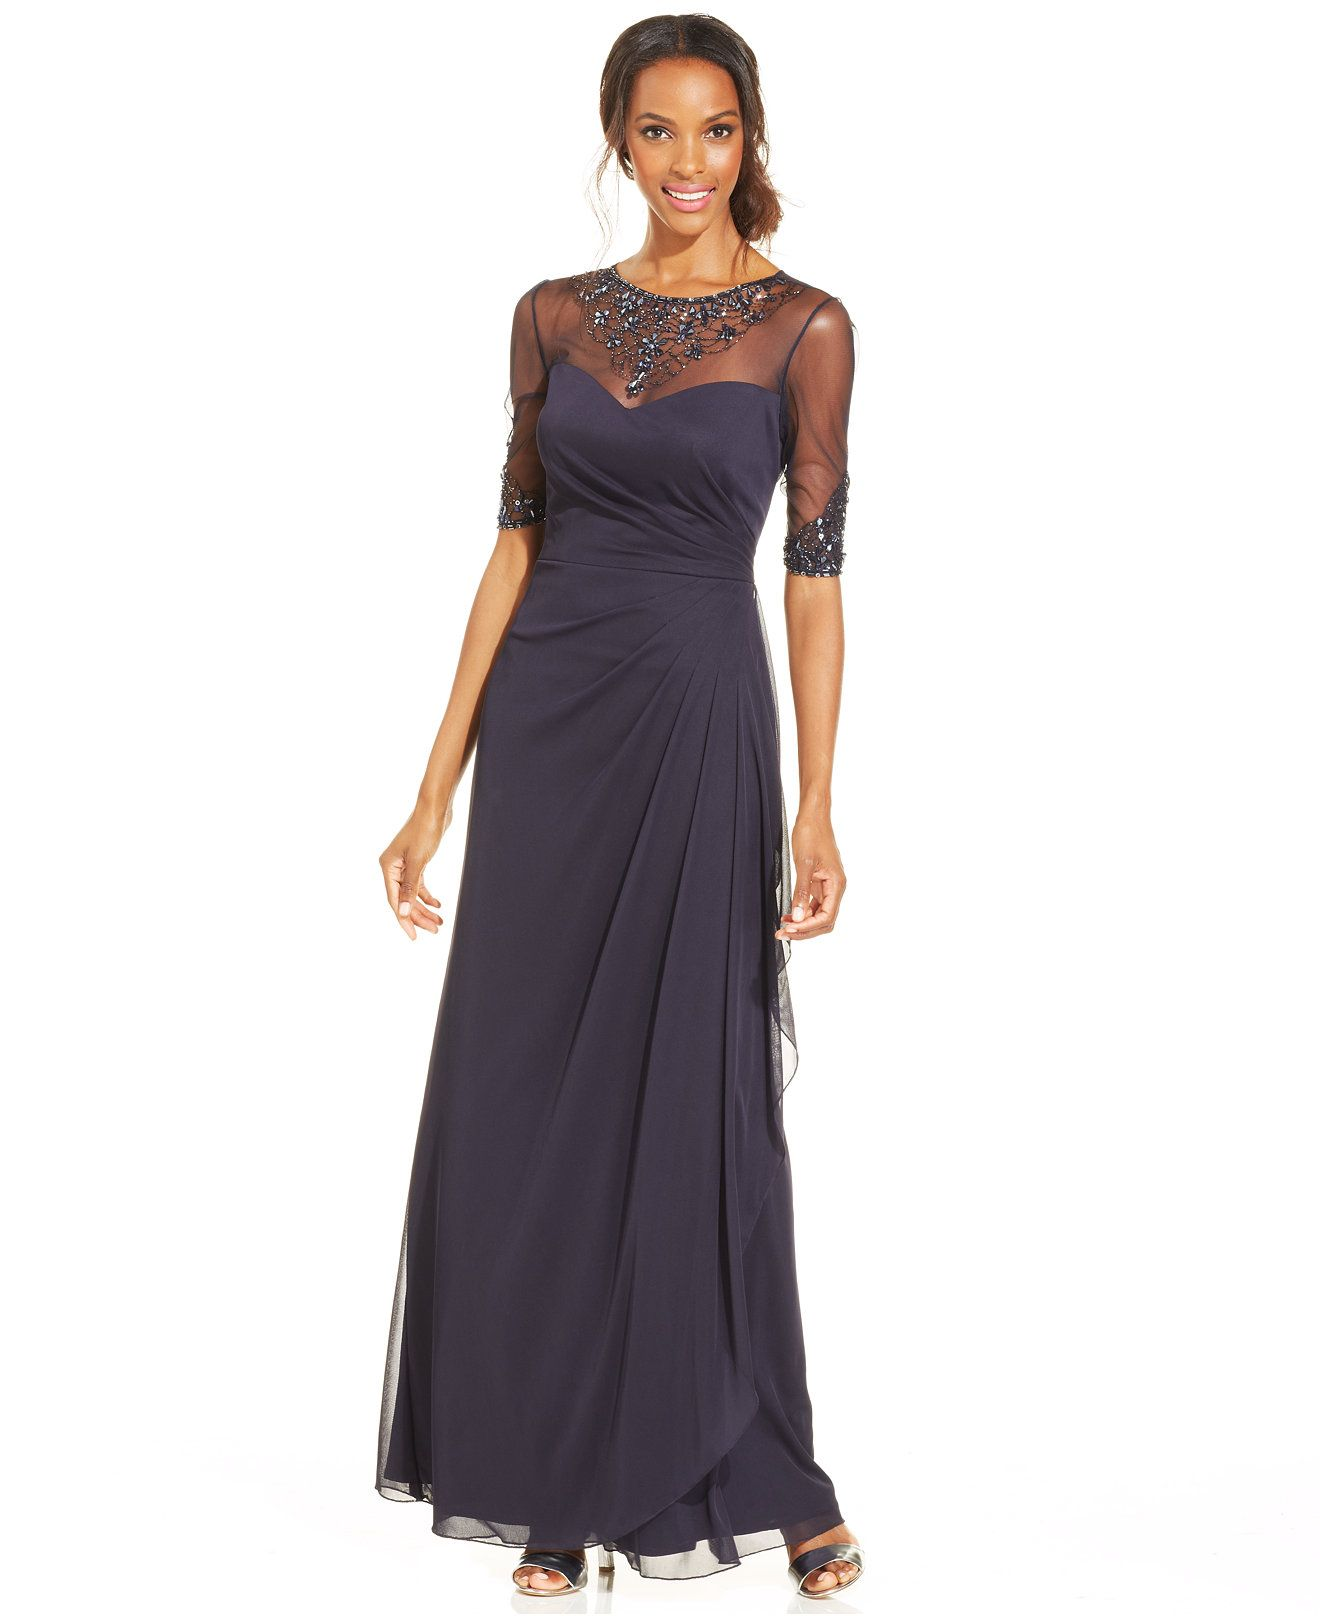 Patra Embellished Illusion Draped Gown Dresses Women Macys